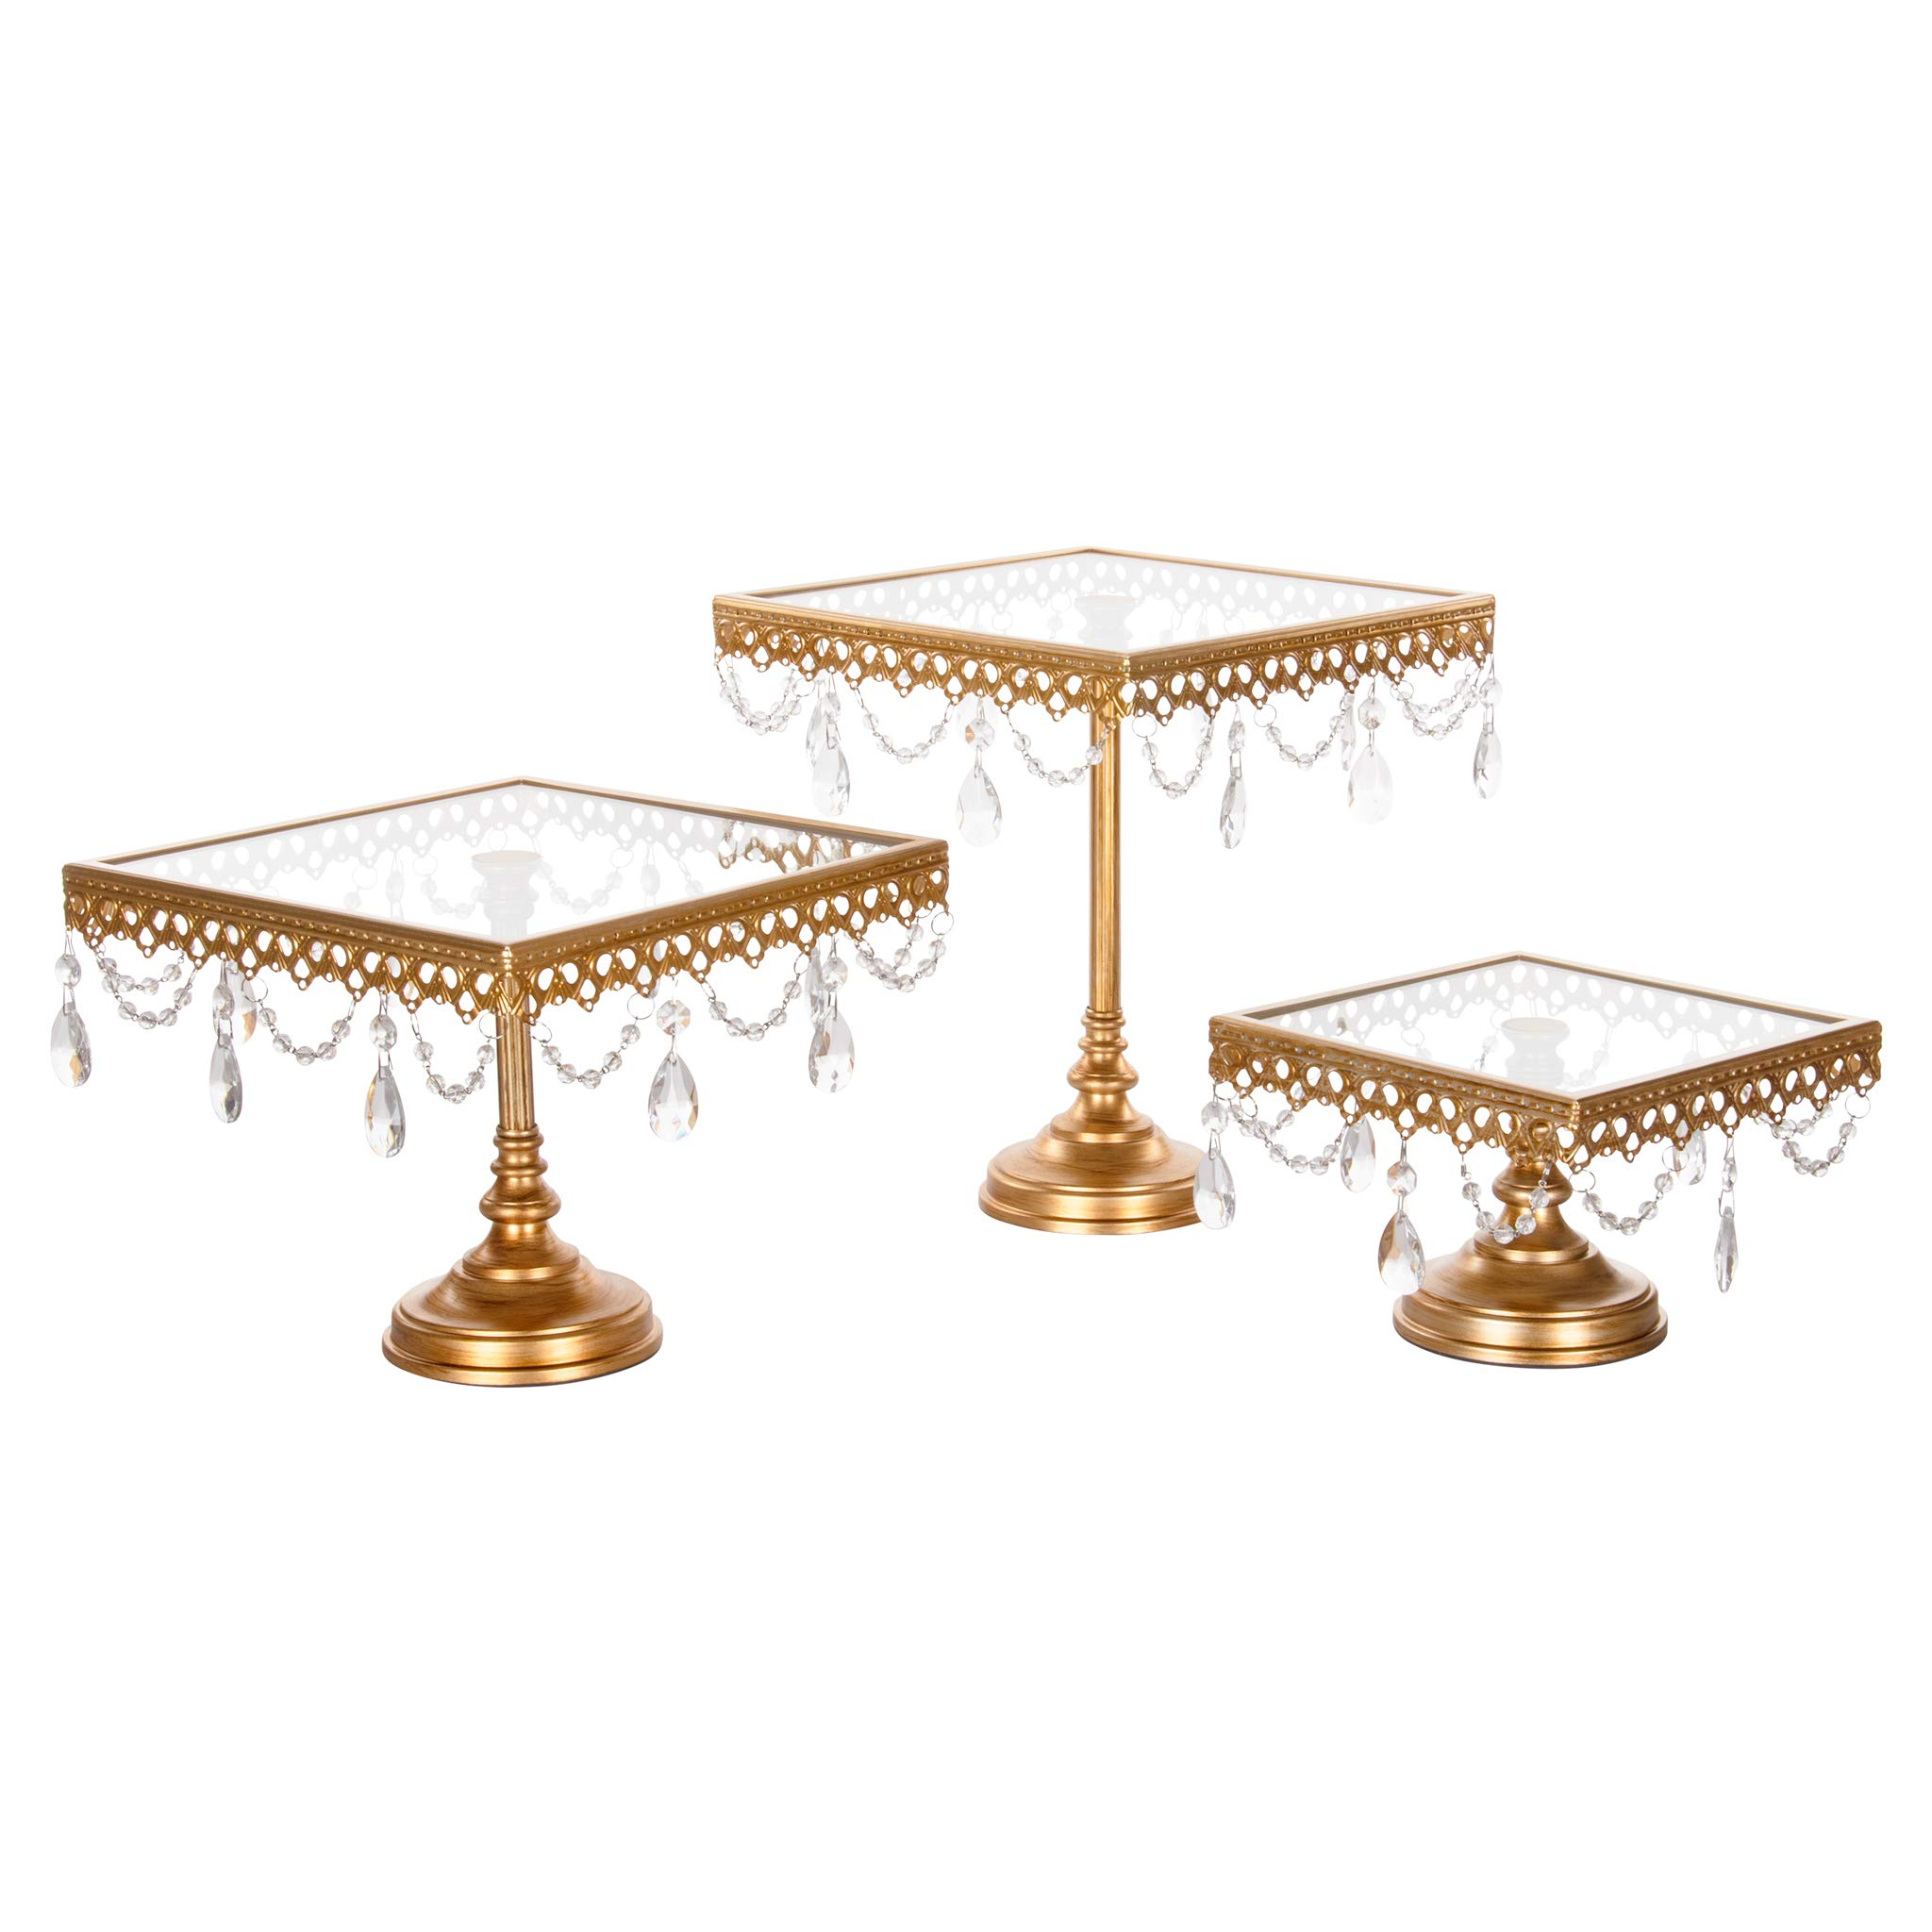 Amalfi Decor Square Cake Stand Set of 3 Pack, Dessert Cupcake Pastry Candy Display Plate for Wedding Event Birthday Party, Glass Top Metal Pedestal Holder with Crystals, Gold by Amalfi Décor